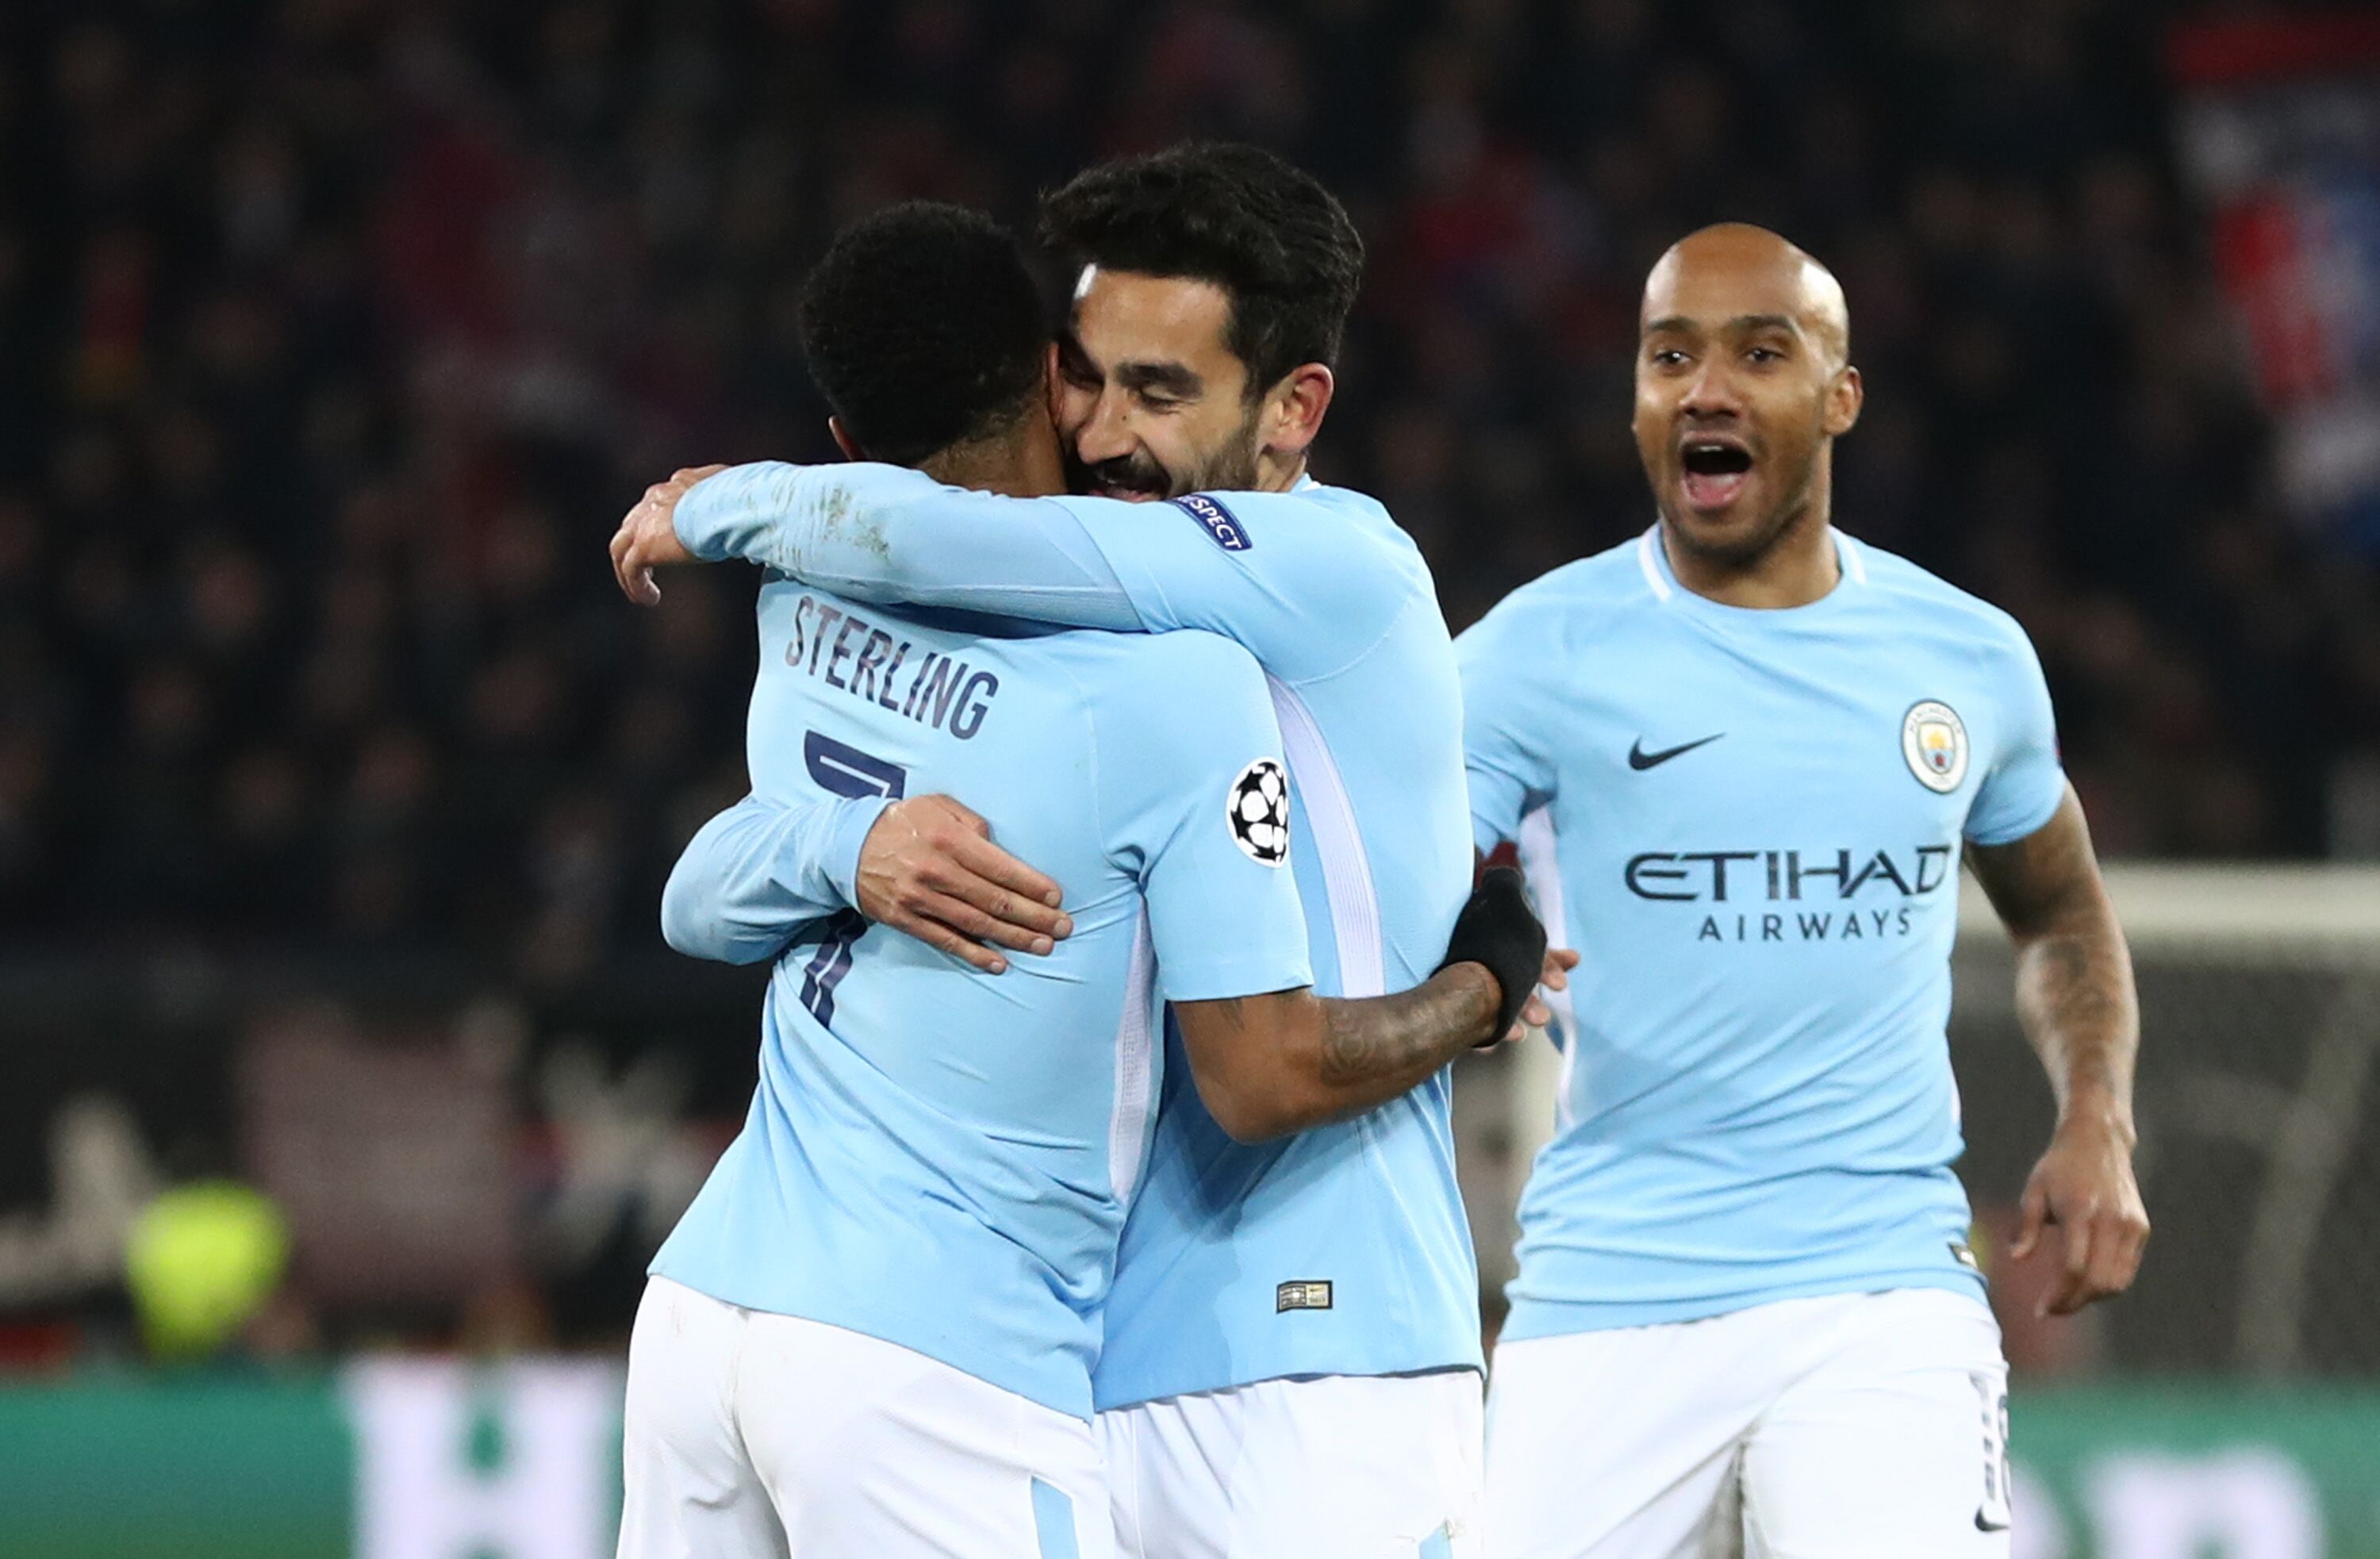 917902528-fc-basel-v-manchester-city-uefa-champions-league-round-of-16-first-leg.jpg